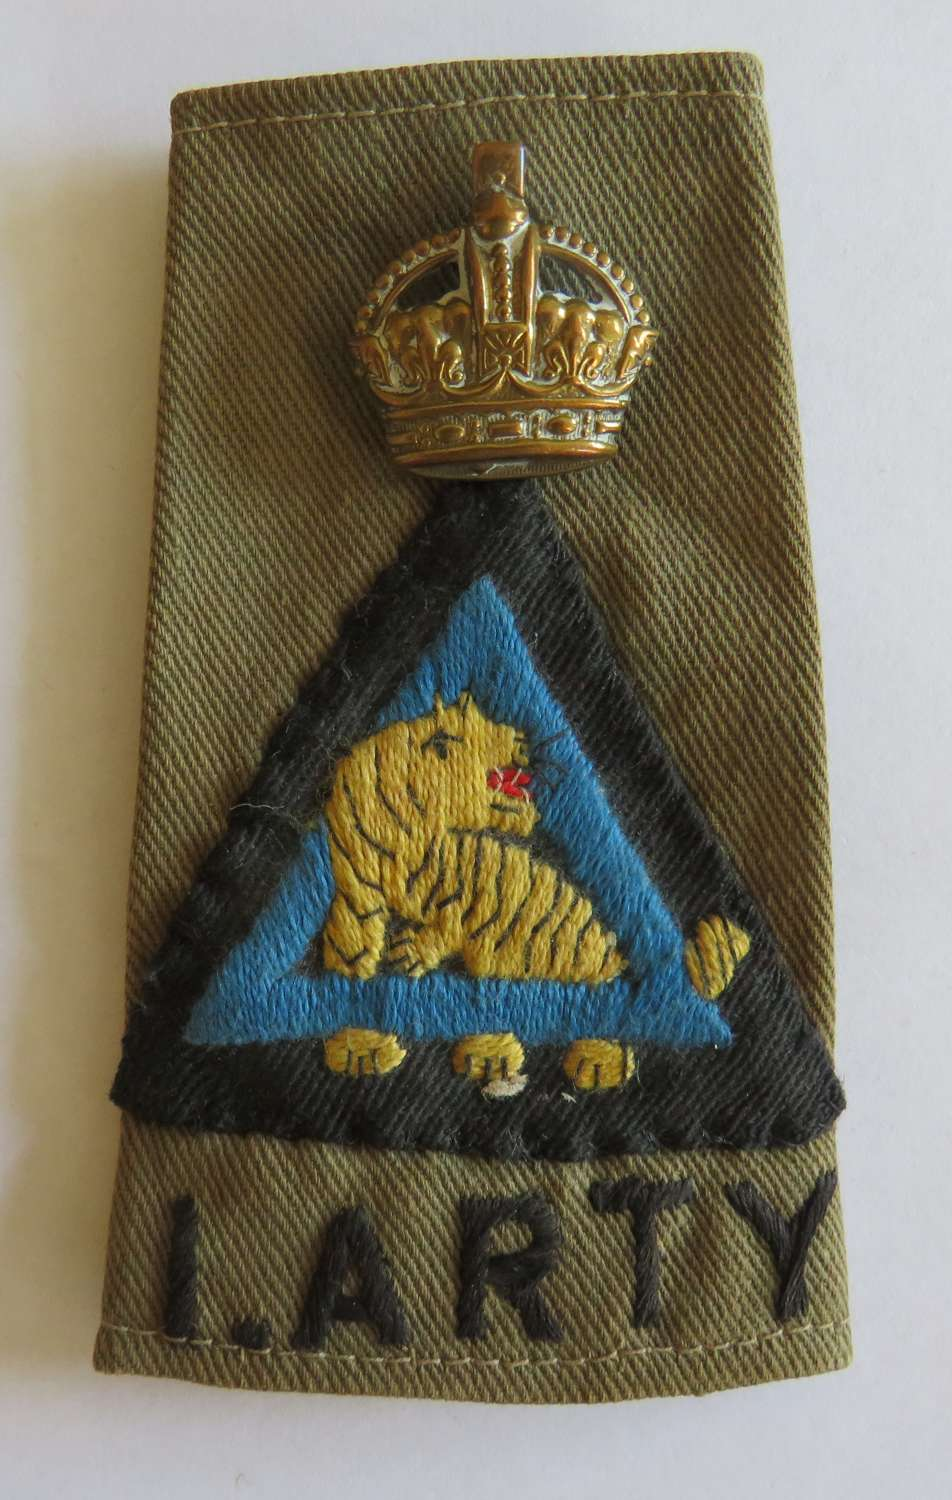 Indian Artillery 26th Indian Division Officers Rank Slip on